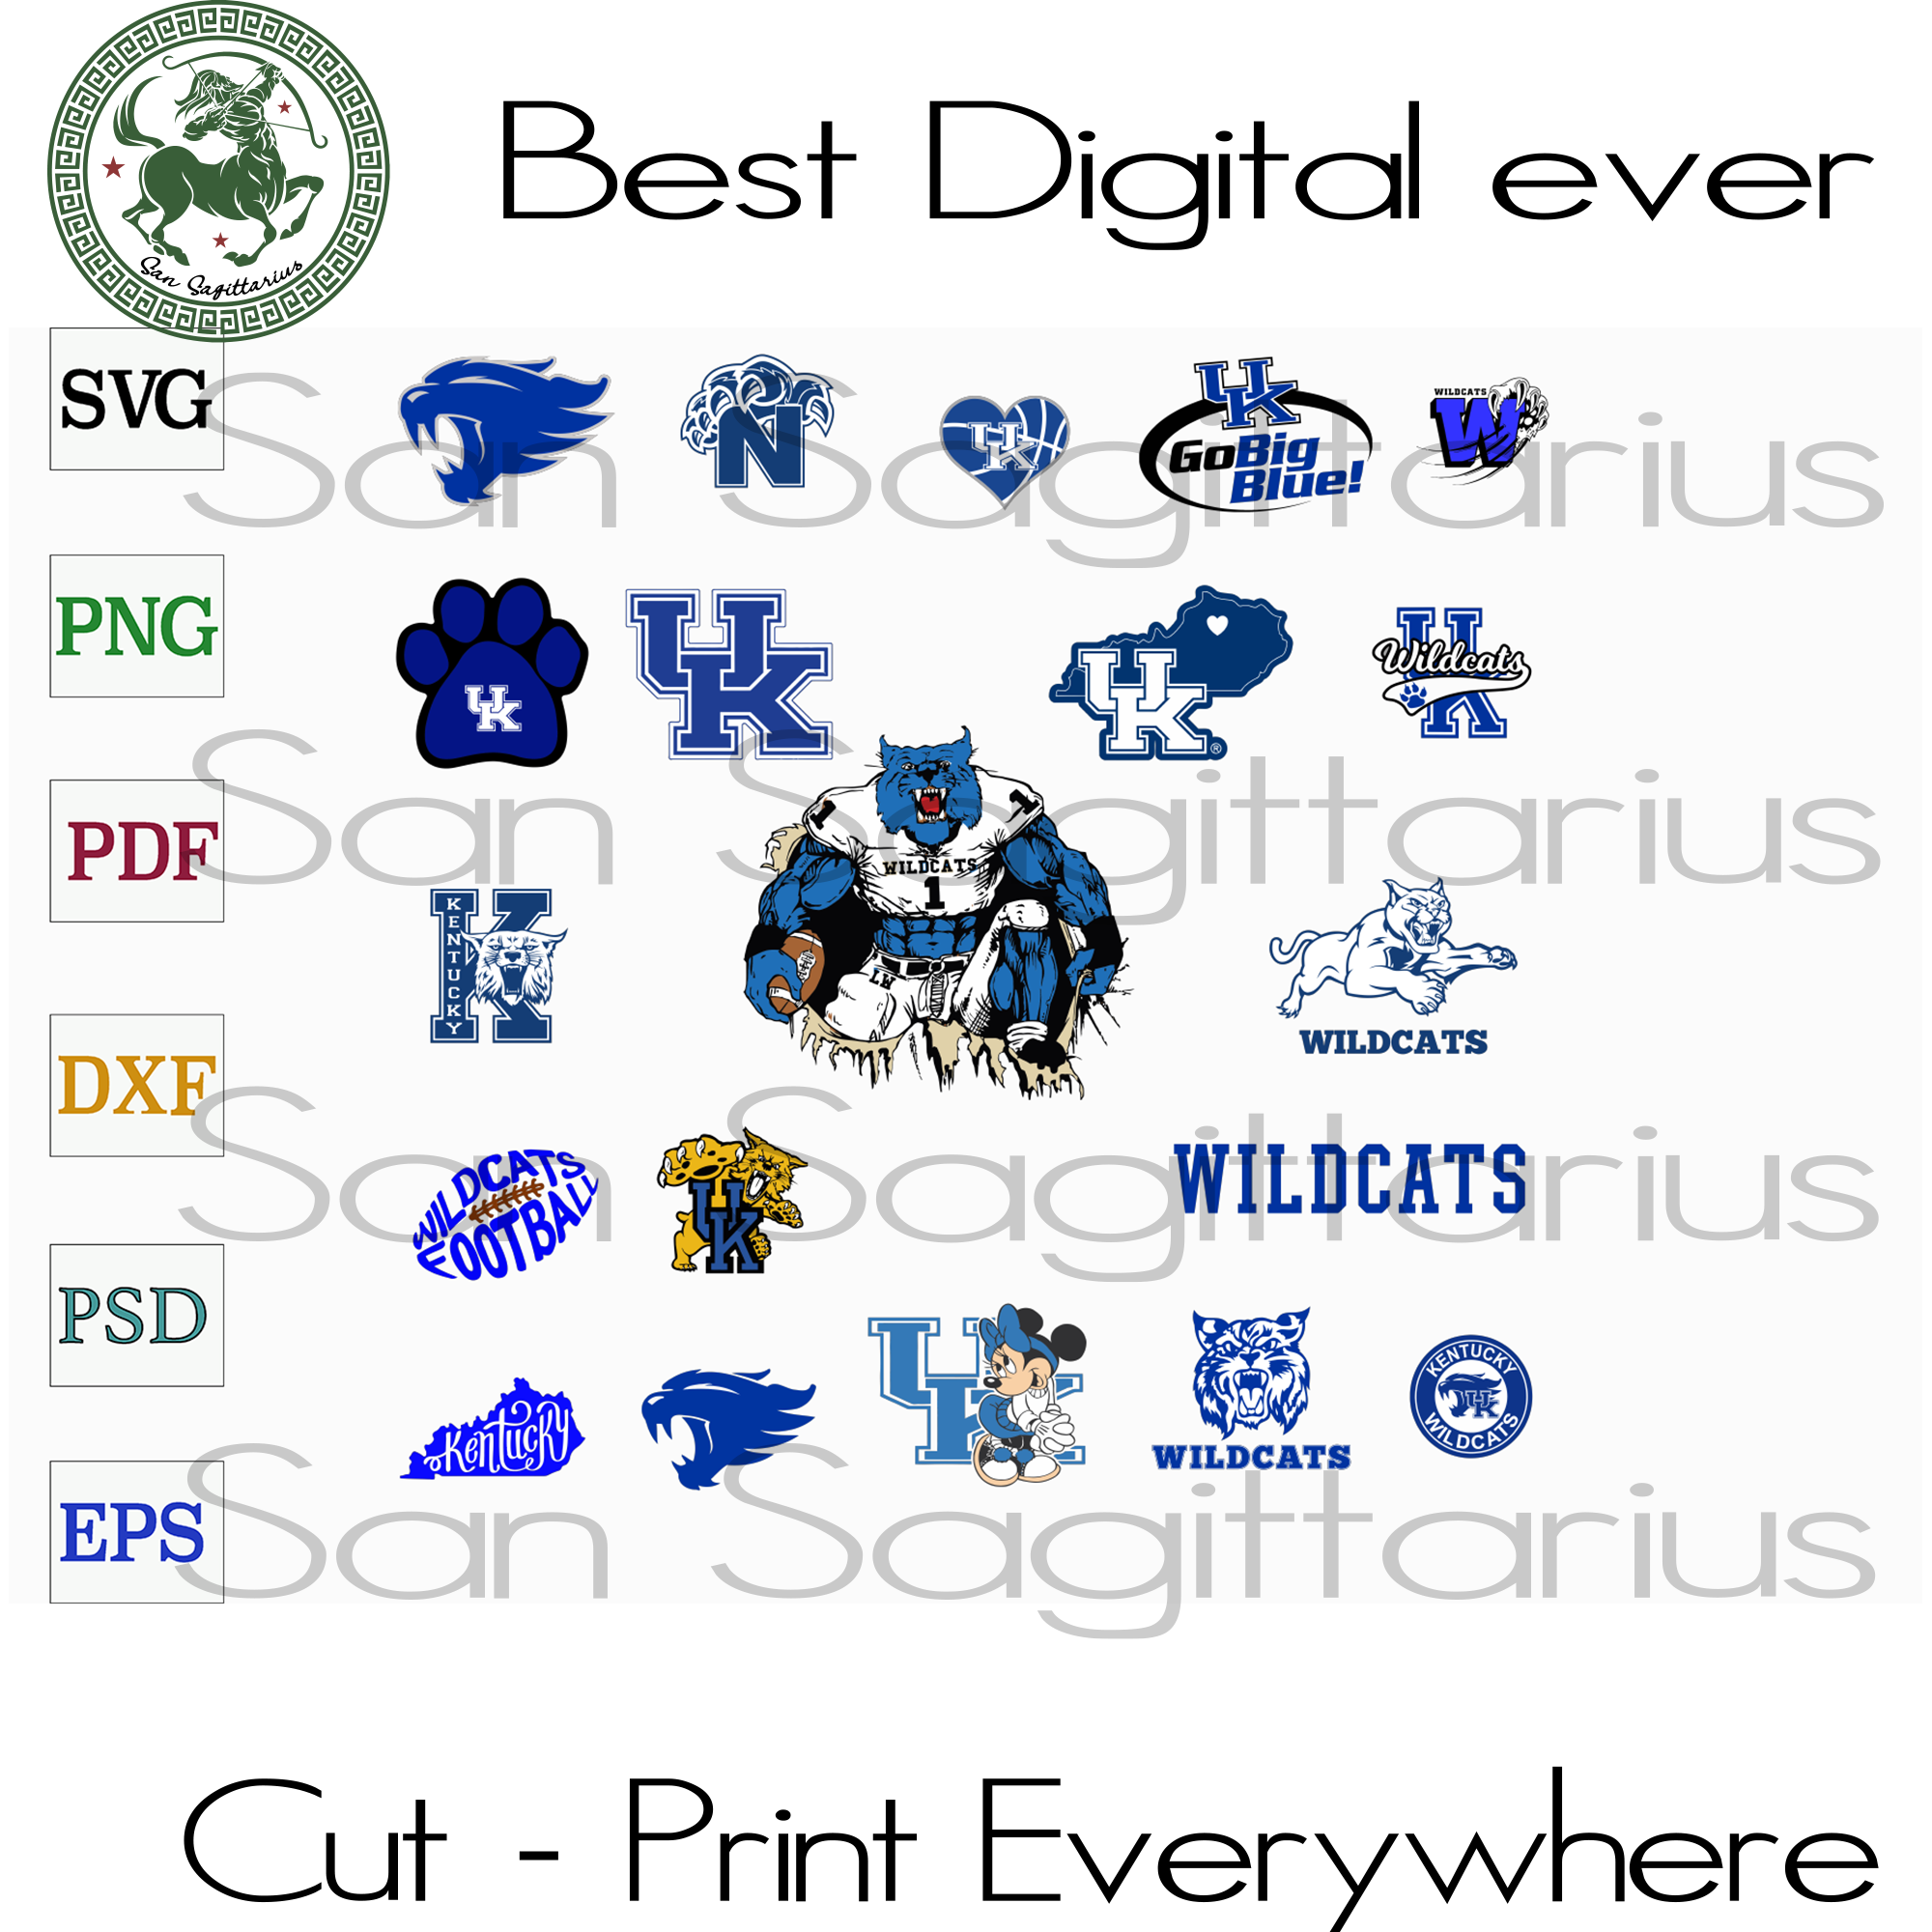 University of Kentucky bundle, Kentucky, Kentucky wildcats, university Kentucky, university, university of Kentucky, Kentucky basketball, Kentucky football, Kentucky anniversary, Kentucky par